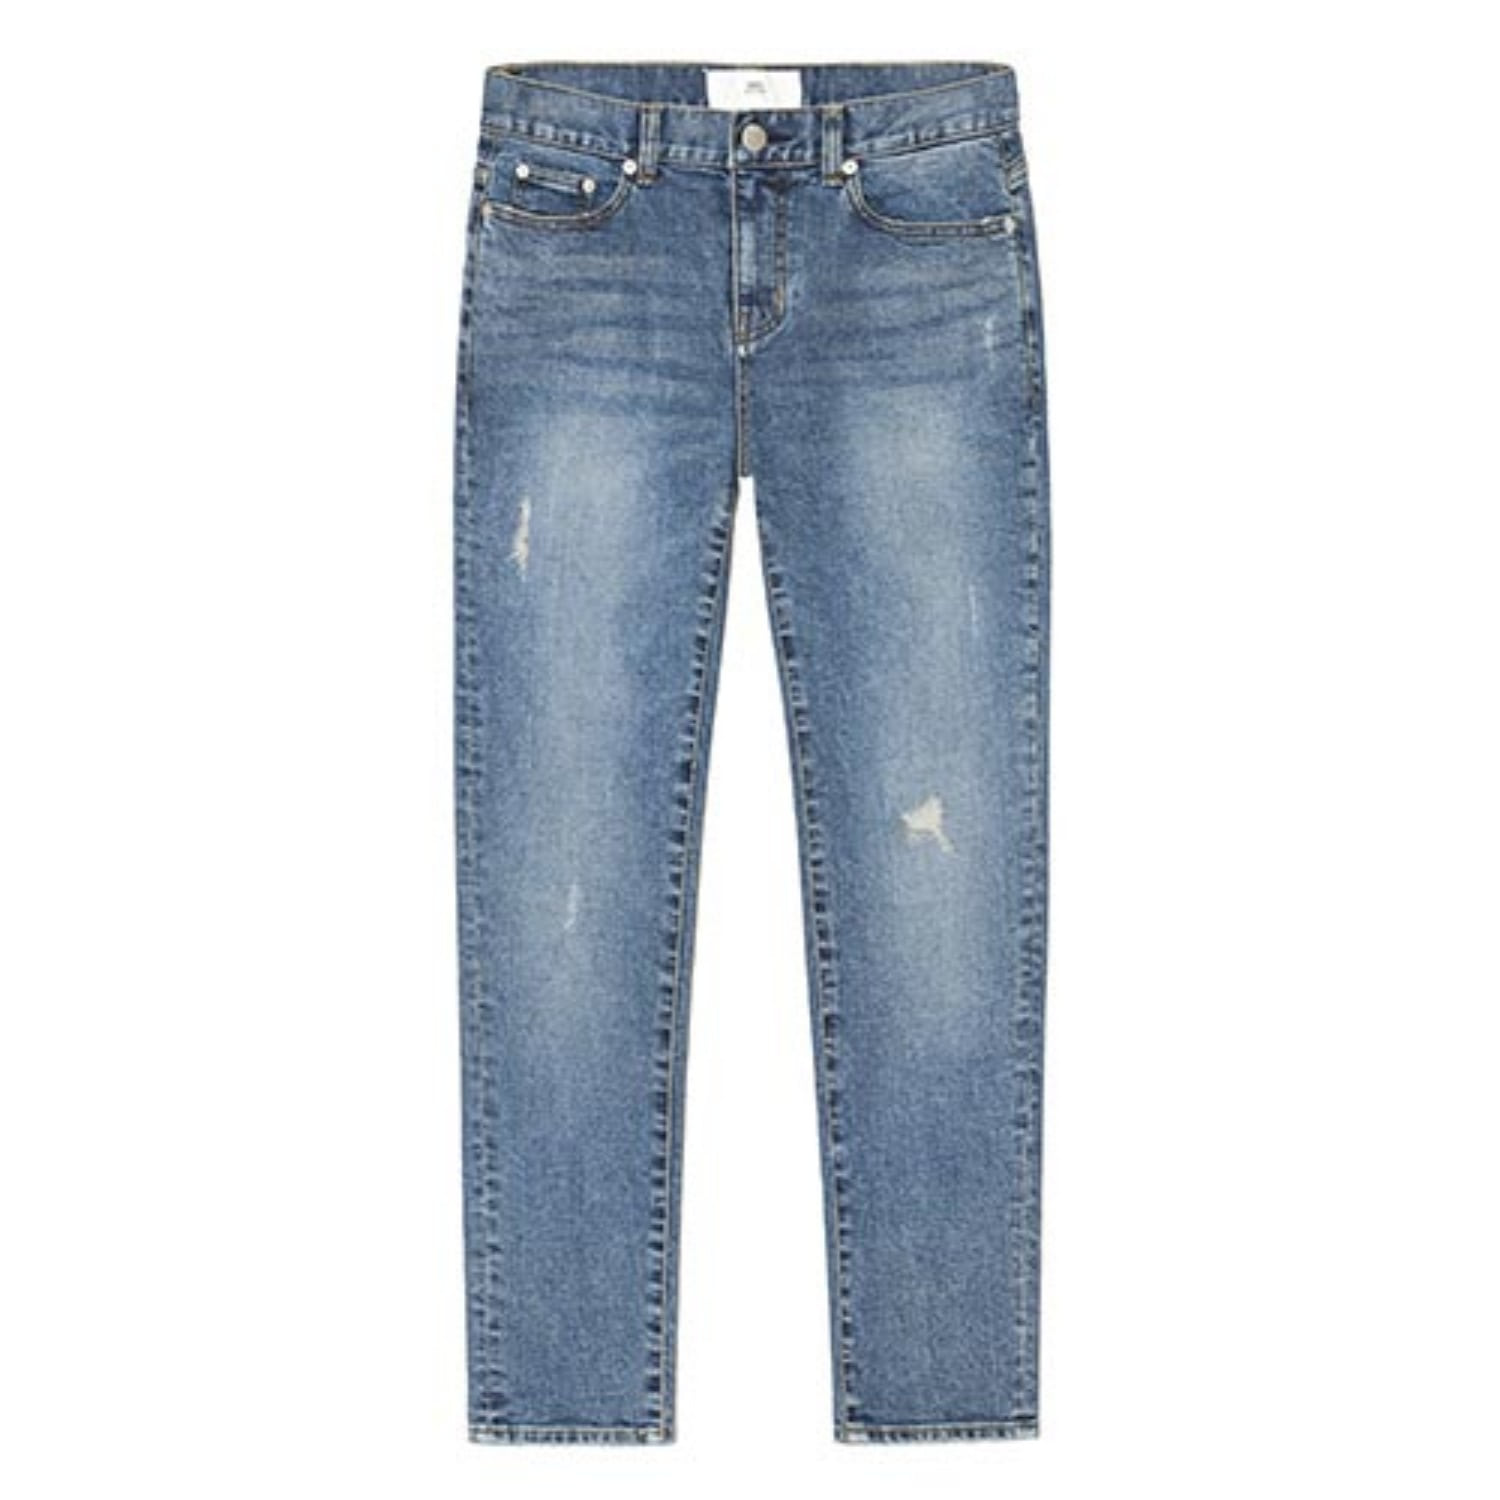 103K Blue Reworked Jeans